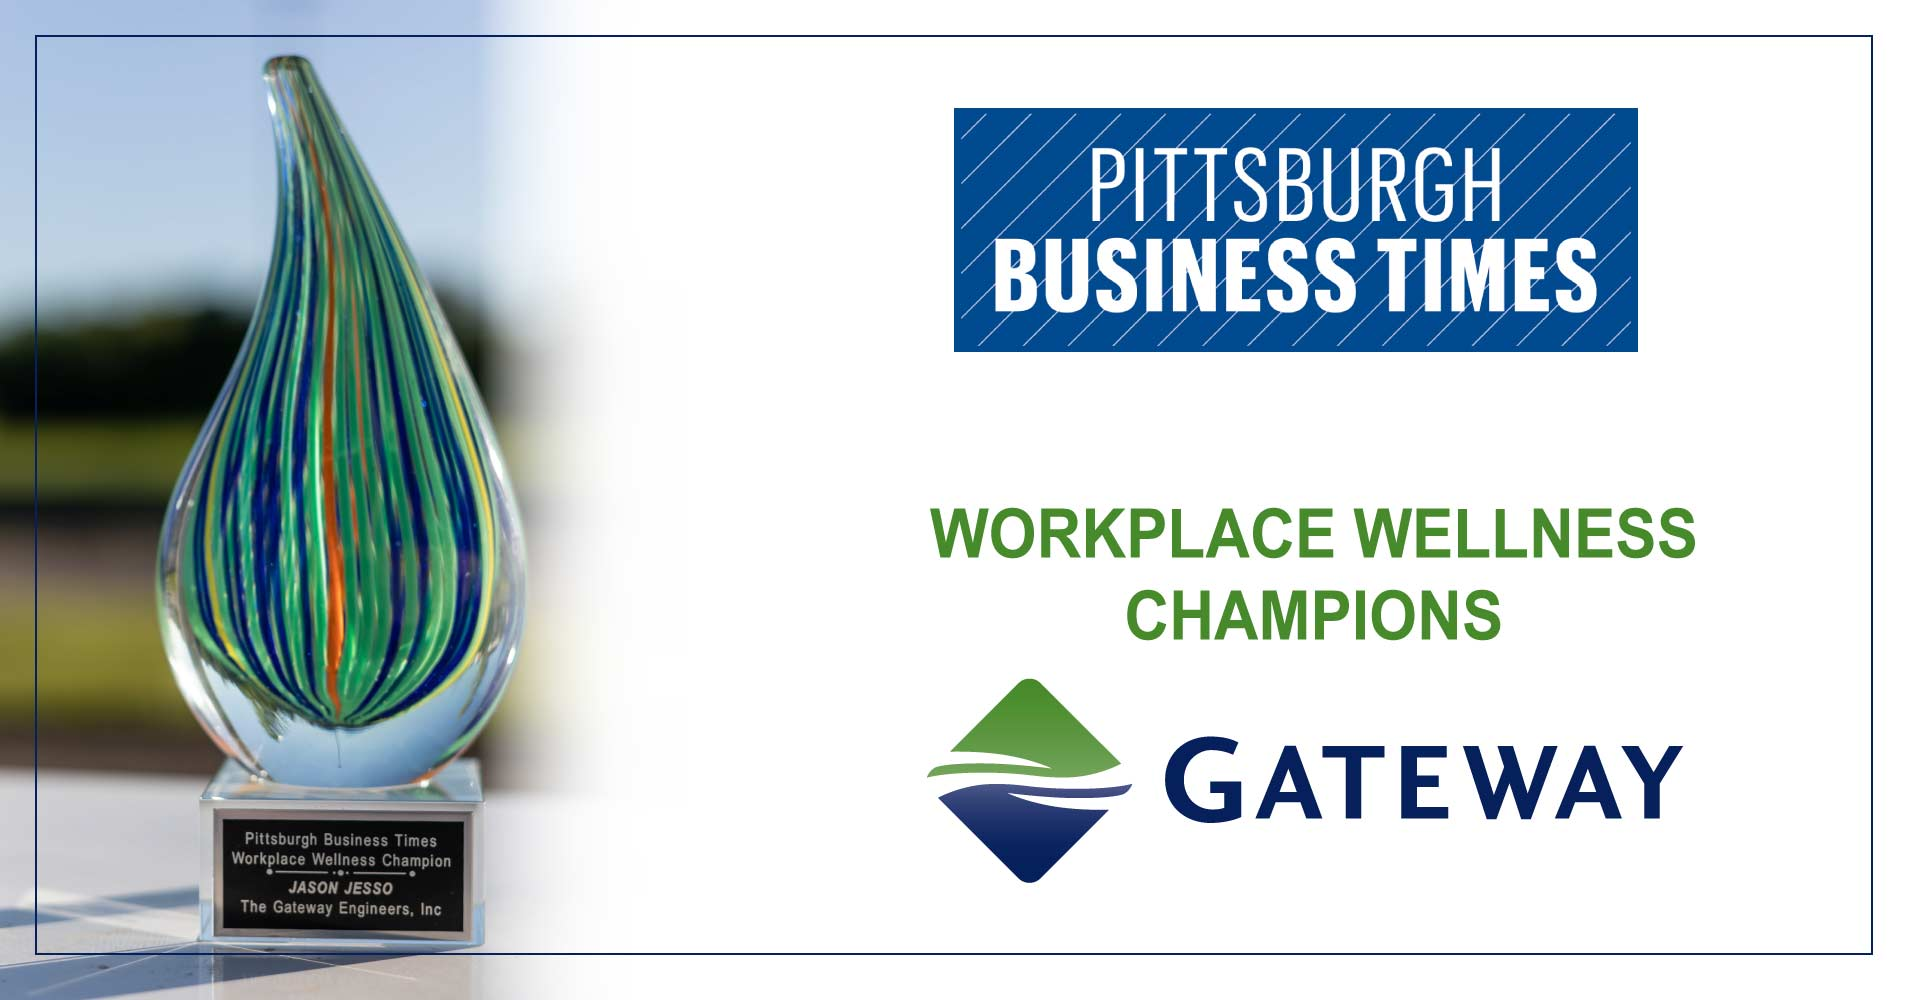 Gateway's CEO Jason Jesso selected as 2019 Workplace Wellness Champion by the Pittsburgh Business Times